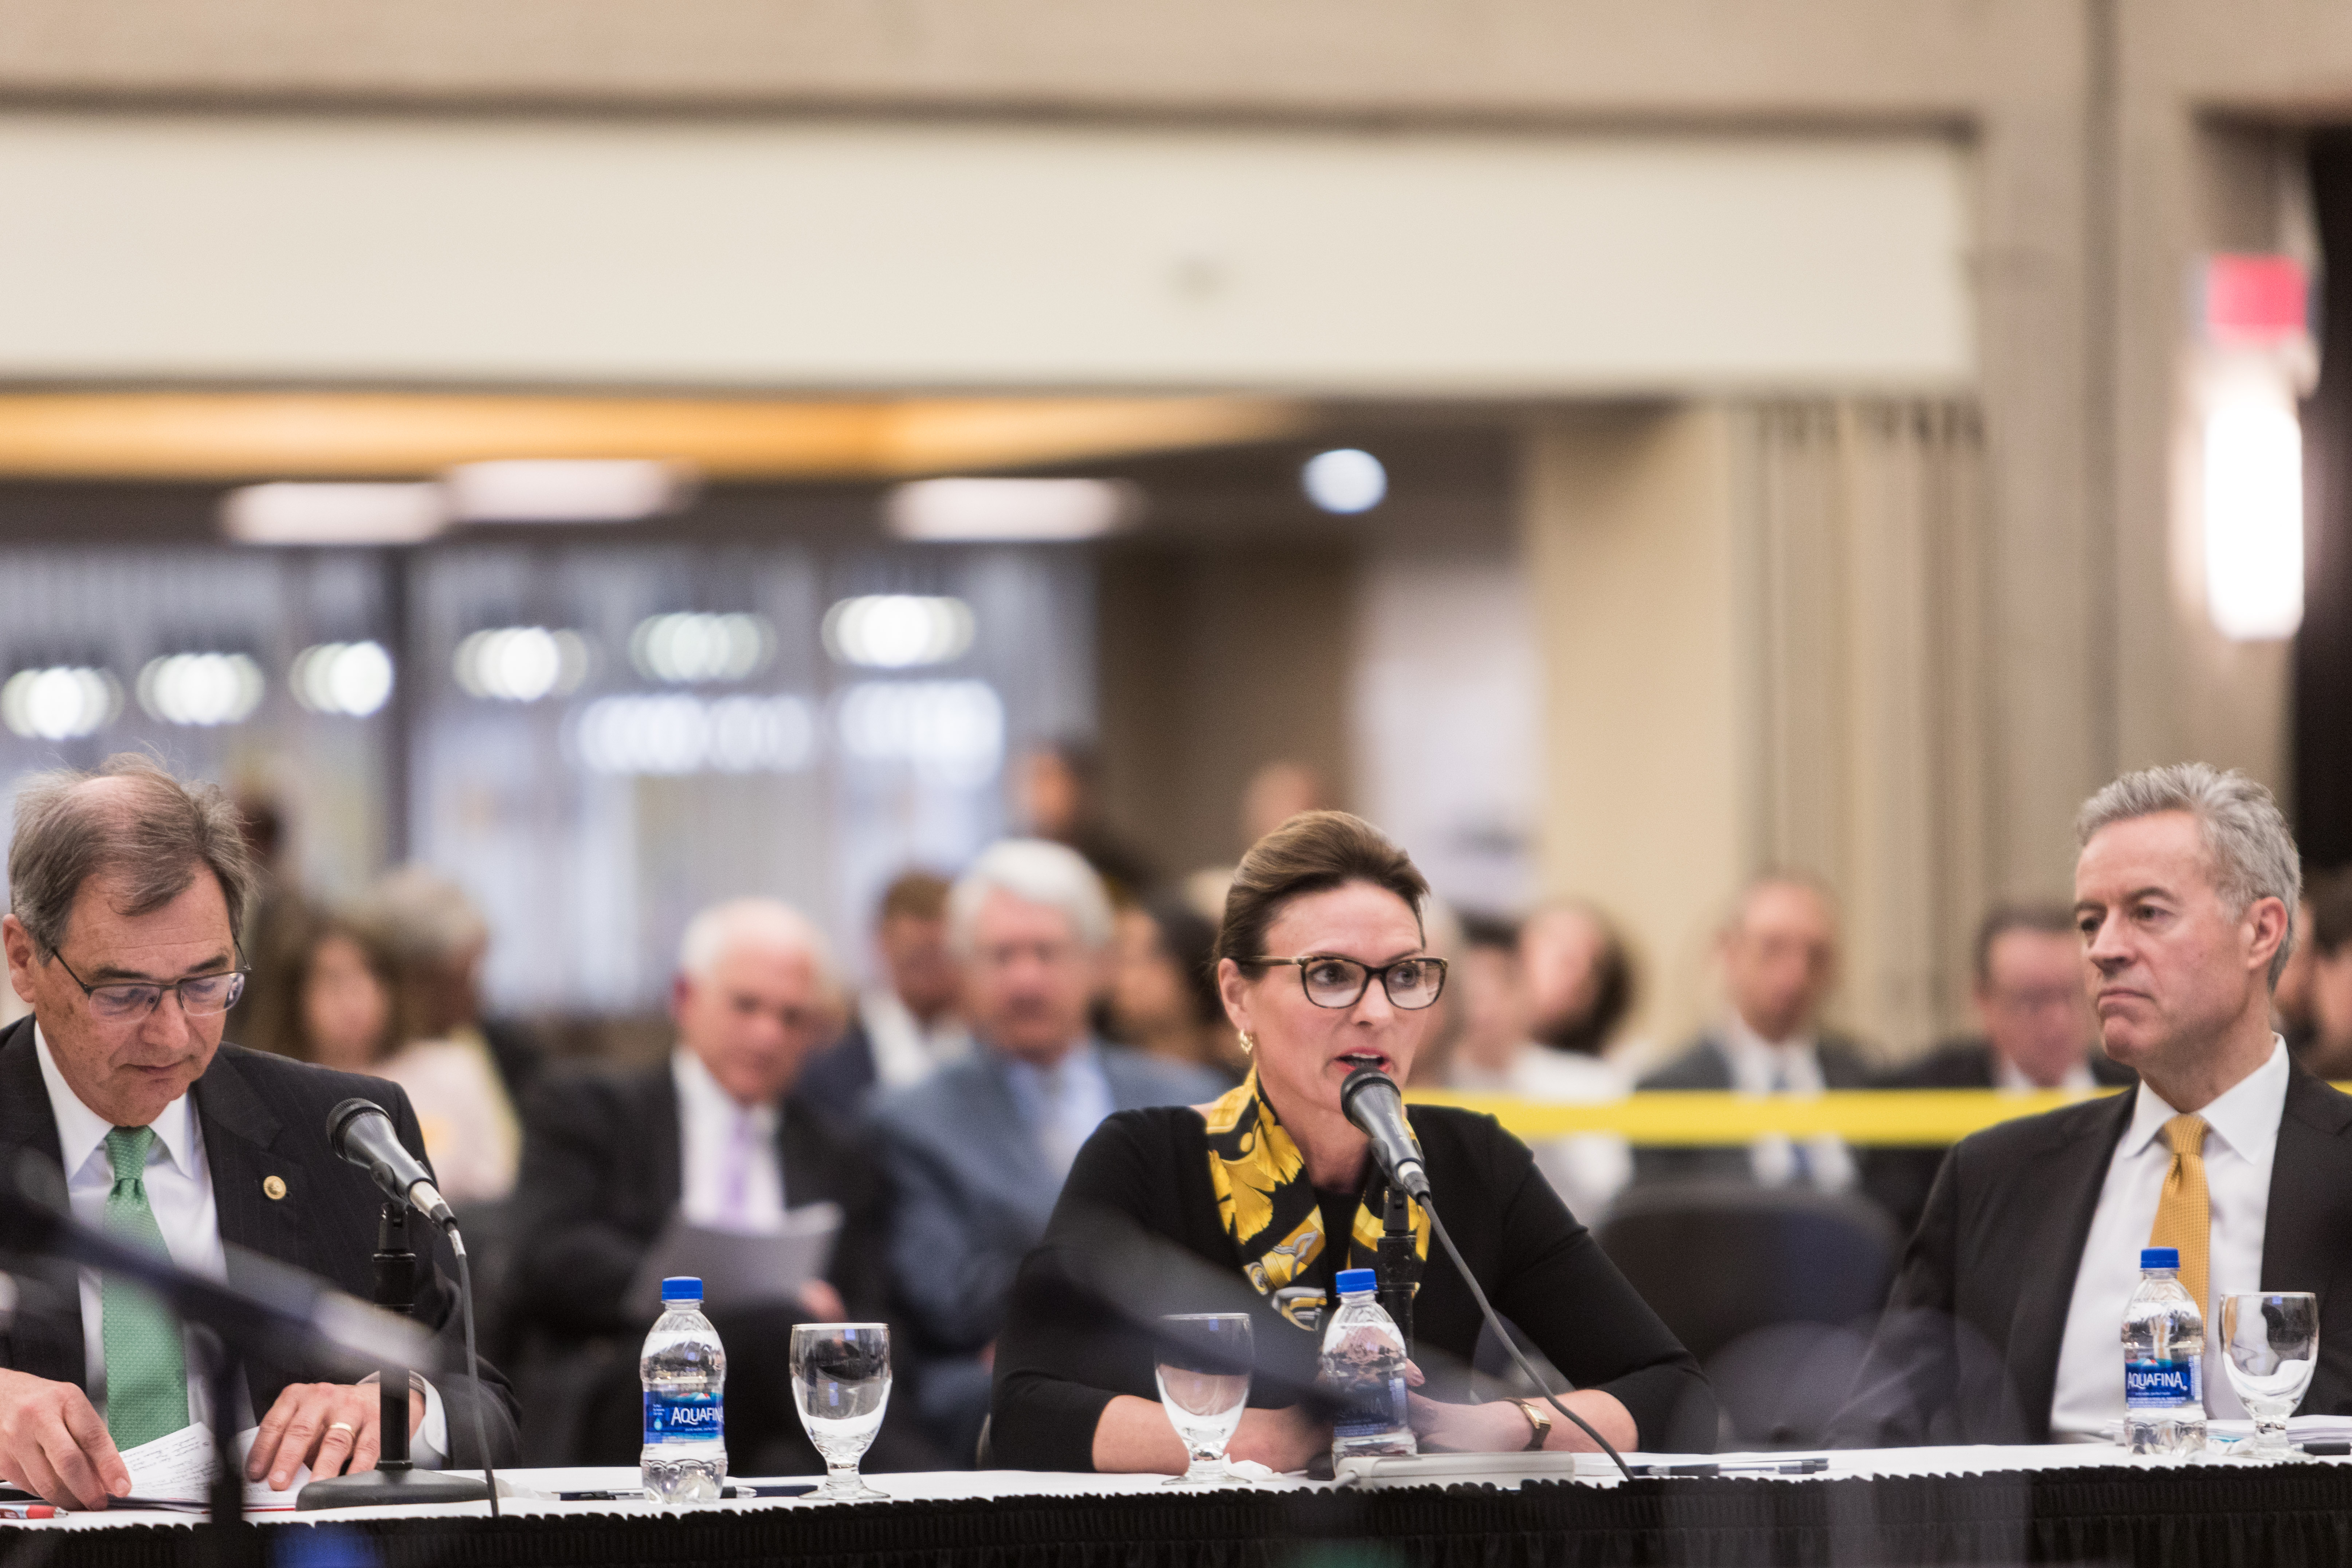 Photo of UW-Superior Chancellor Renee Wachter speaking at the Board of Regents meeting hosted by UW-Milwaukee on June 6, 2019. (Photo by Mikaila Dusenberry/UW-Milwaukee)